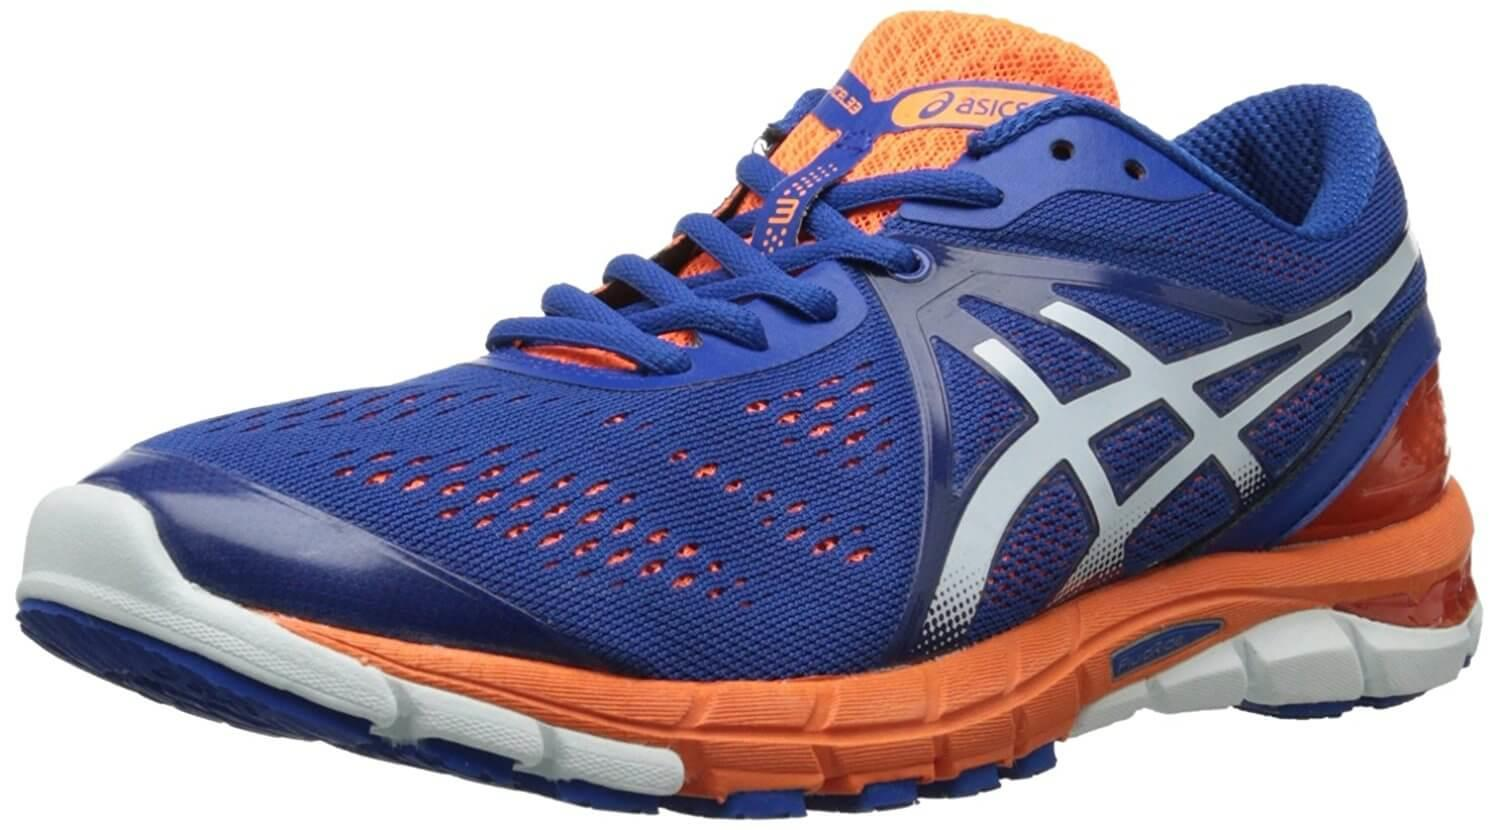 Asics Excel  Running Shoes Review